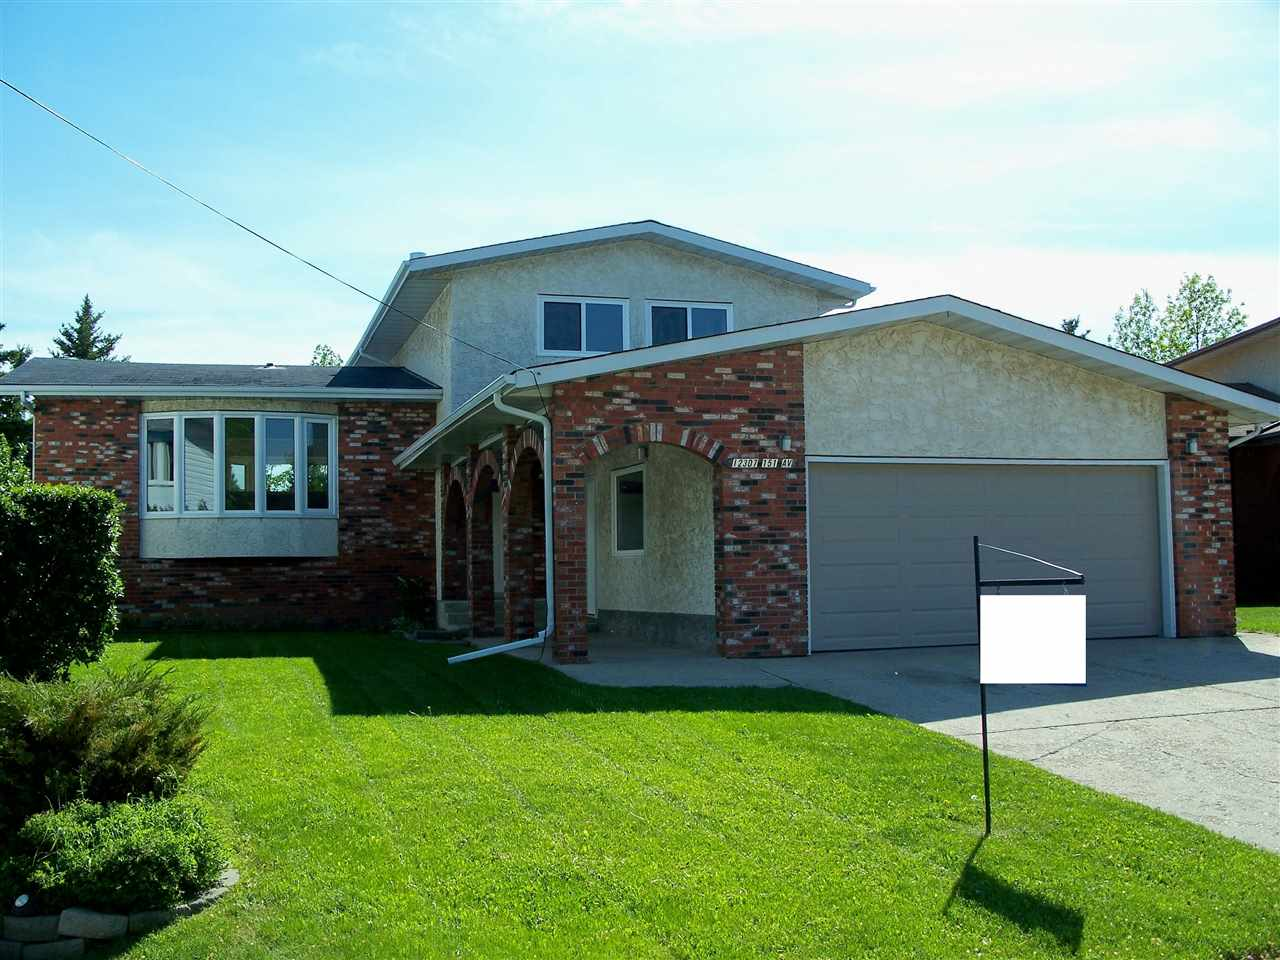 Main Photo: 12307 151 Avenue NW in Edmonton: Zone 27 House for sale : MLS® # E4059383